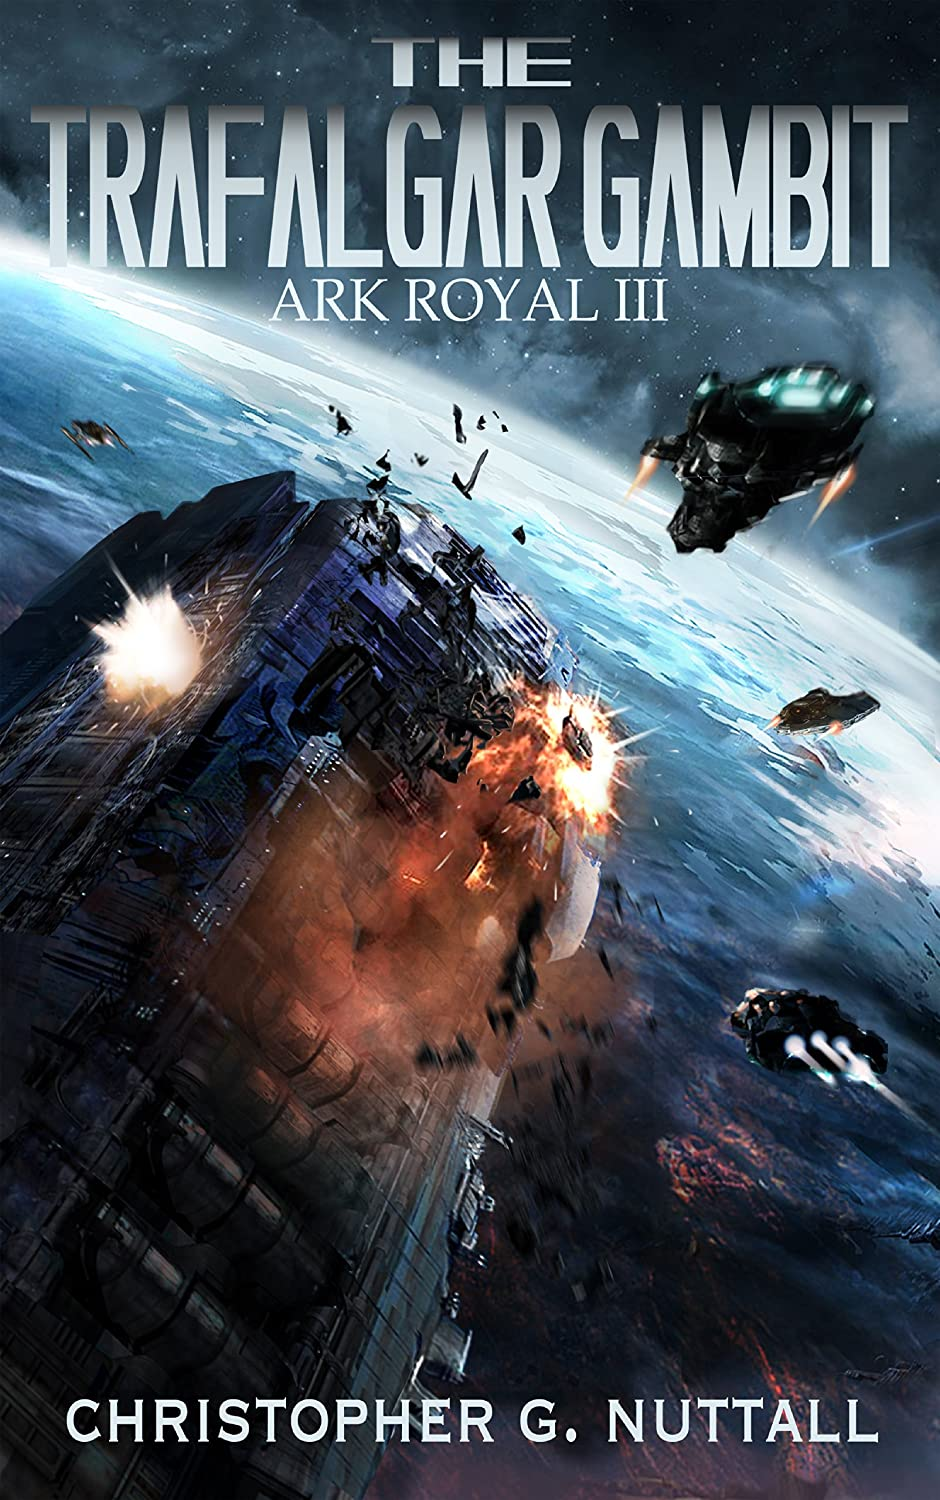 The Trafalgar Gambit (Ark Royal Book 3) - Christopher Nuttall,Justin Adams